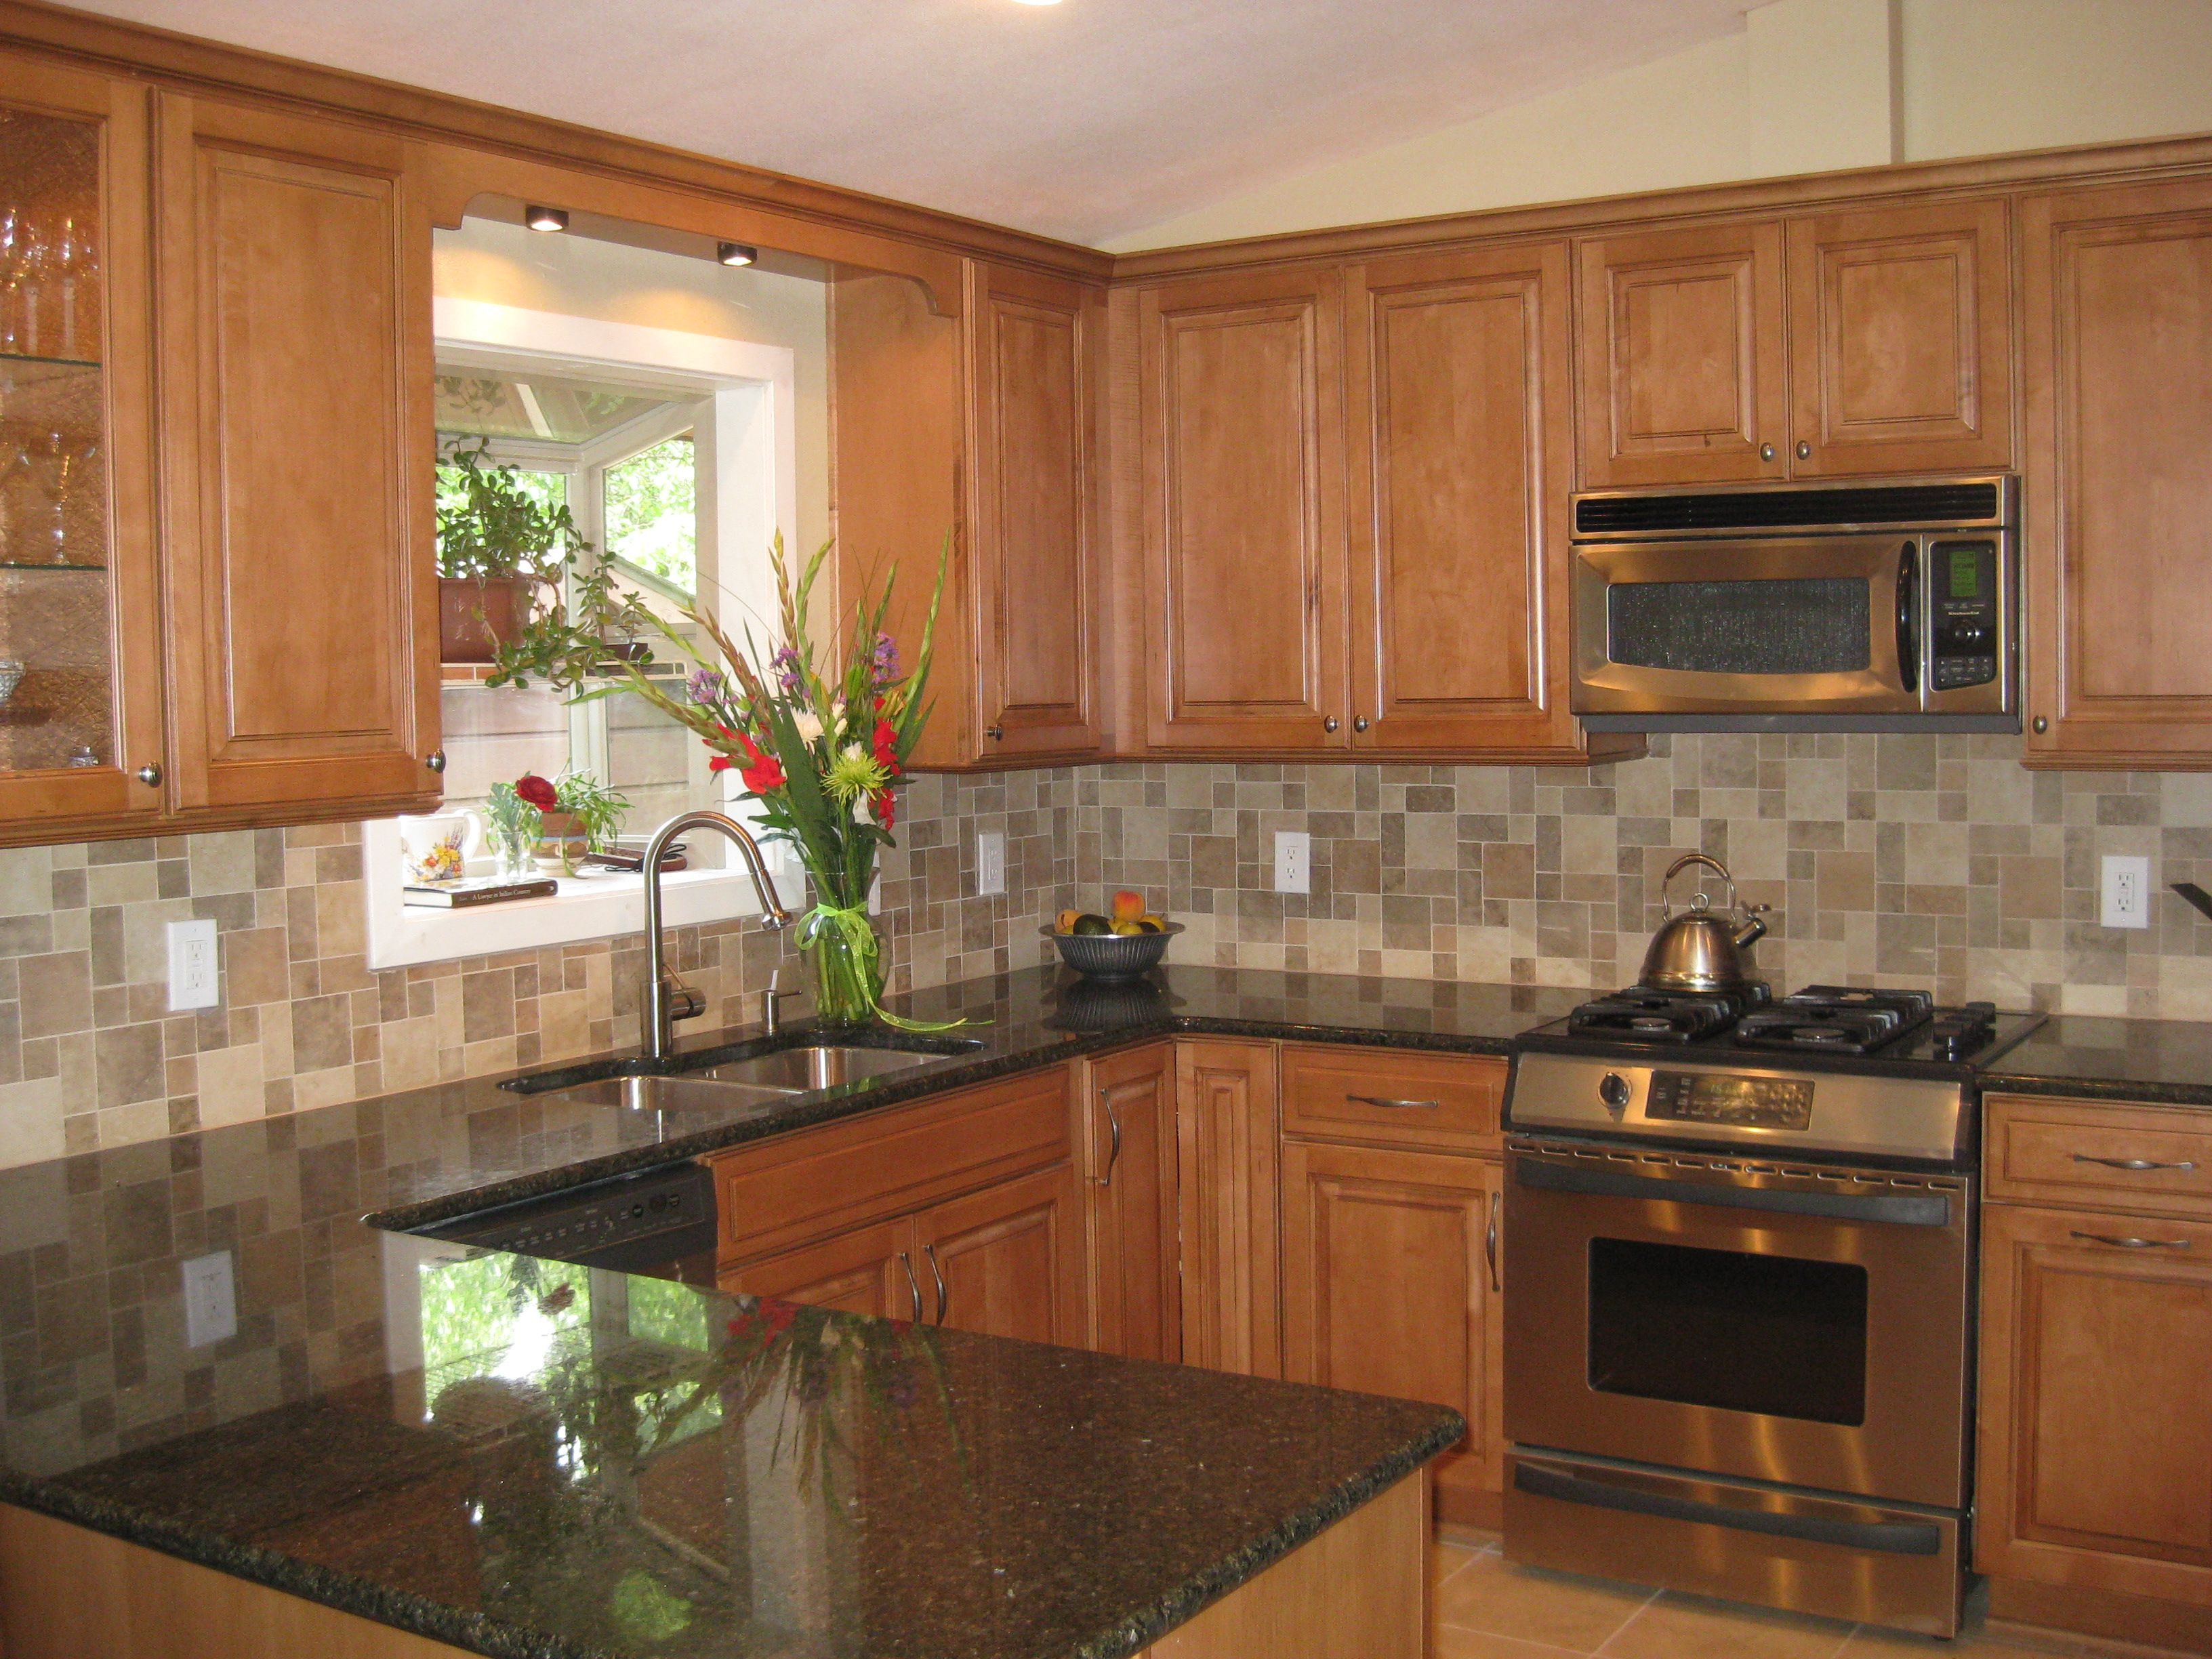 Maple Countertops Kitchen Cherry Wood Table And Chairs Light Cabinets With Granite